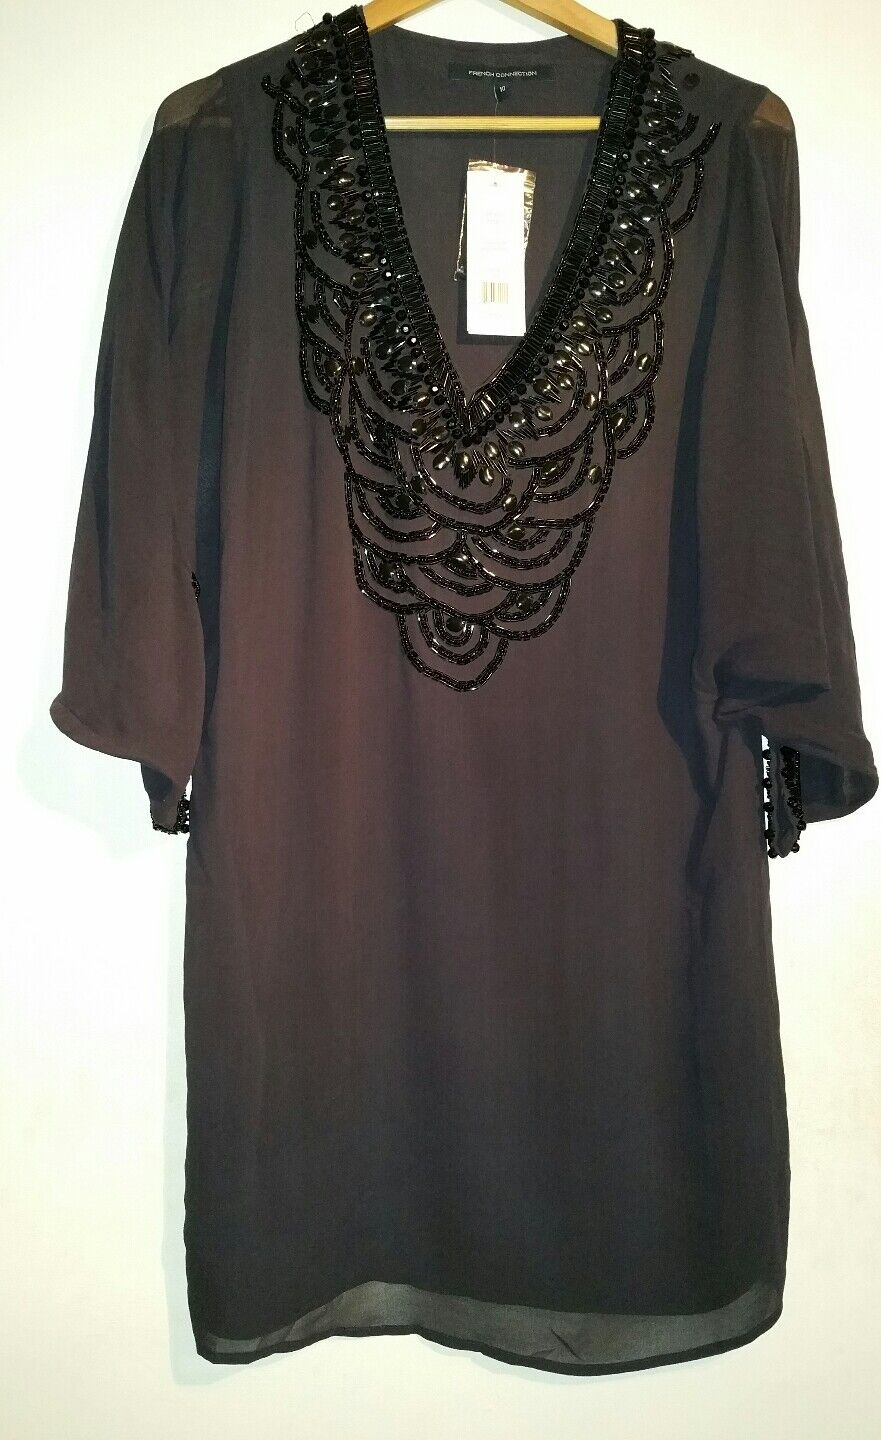 BNWT FRENCH CONNECTION WINTER GREY REBECCA BEADS DRESS SIZE 10